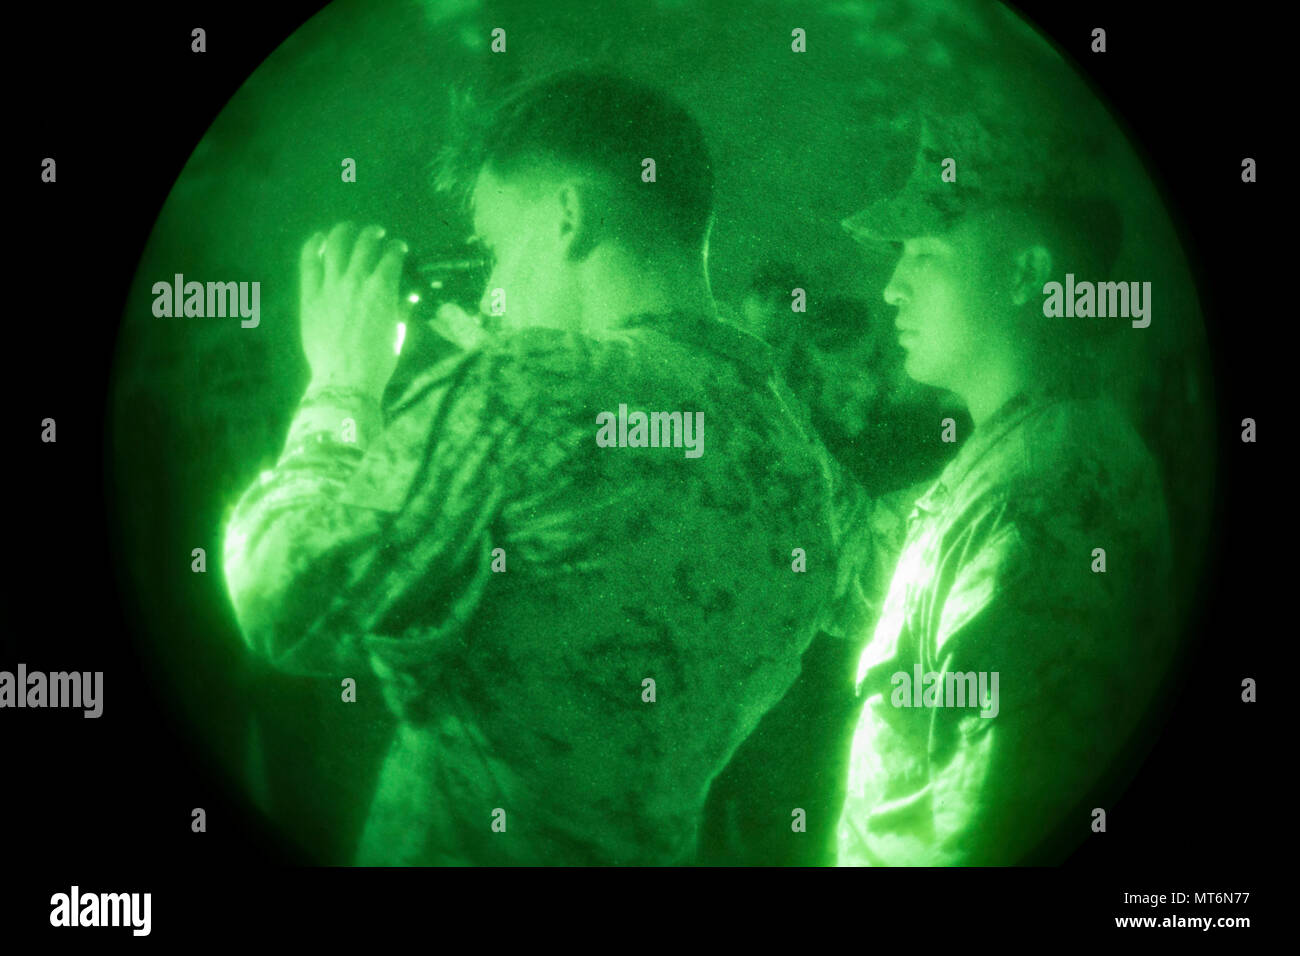 U.S. Marine Corps Sgt. Pawel Cabaj, left, bust instructor, 2nd Marine Division, demonstrates how to use a PVS-14 night vision device during Career Orientated Training for Midshipmen (CORTRAMID) Marine Week, Camp Lejeune, N.C., July 25, 2017. The purpose of CORTRAMID is to expose students to opportunities in the Fleet Marine Forces and generate an interest in a Marine Corps commission. (U.S. Marine Corps photo by Lance Cpl. Ashley D. Gomez) Stock Photo